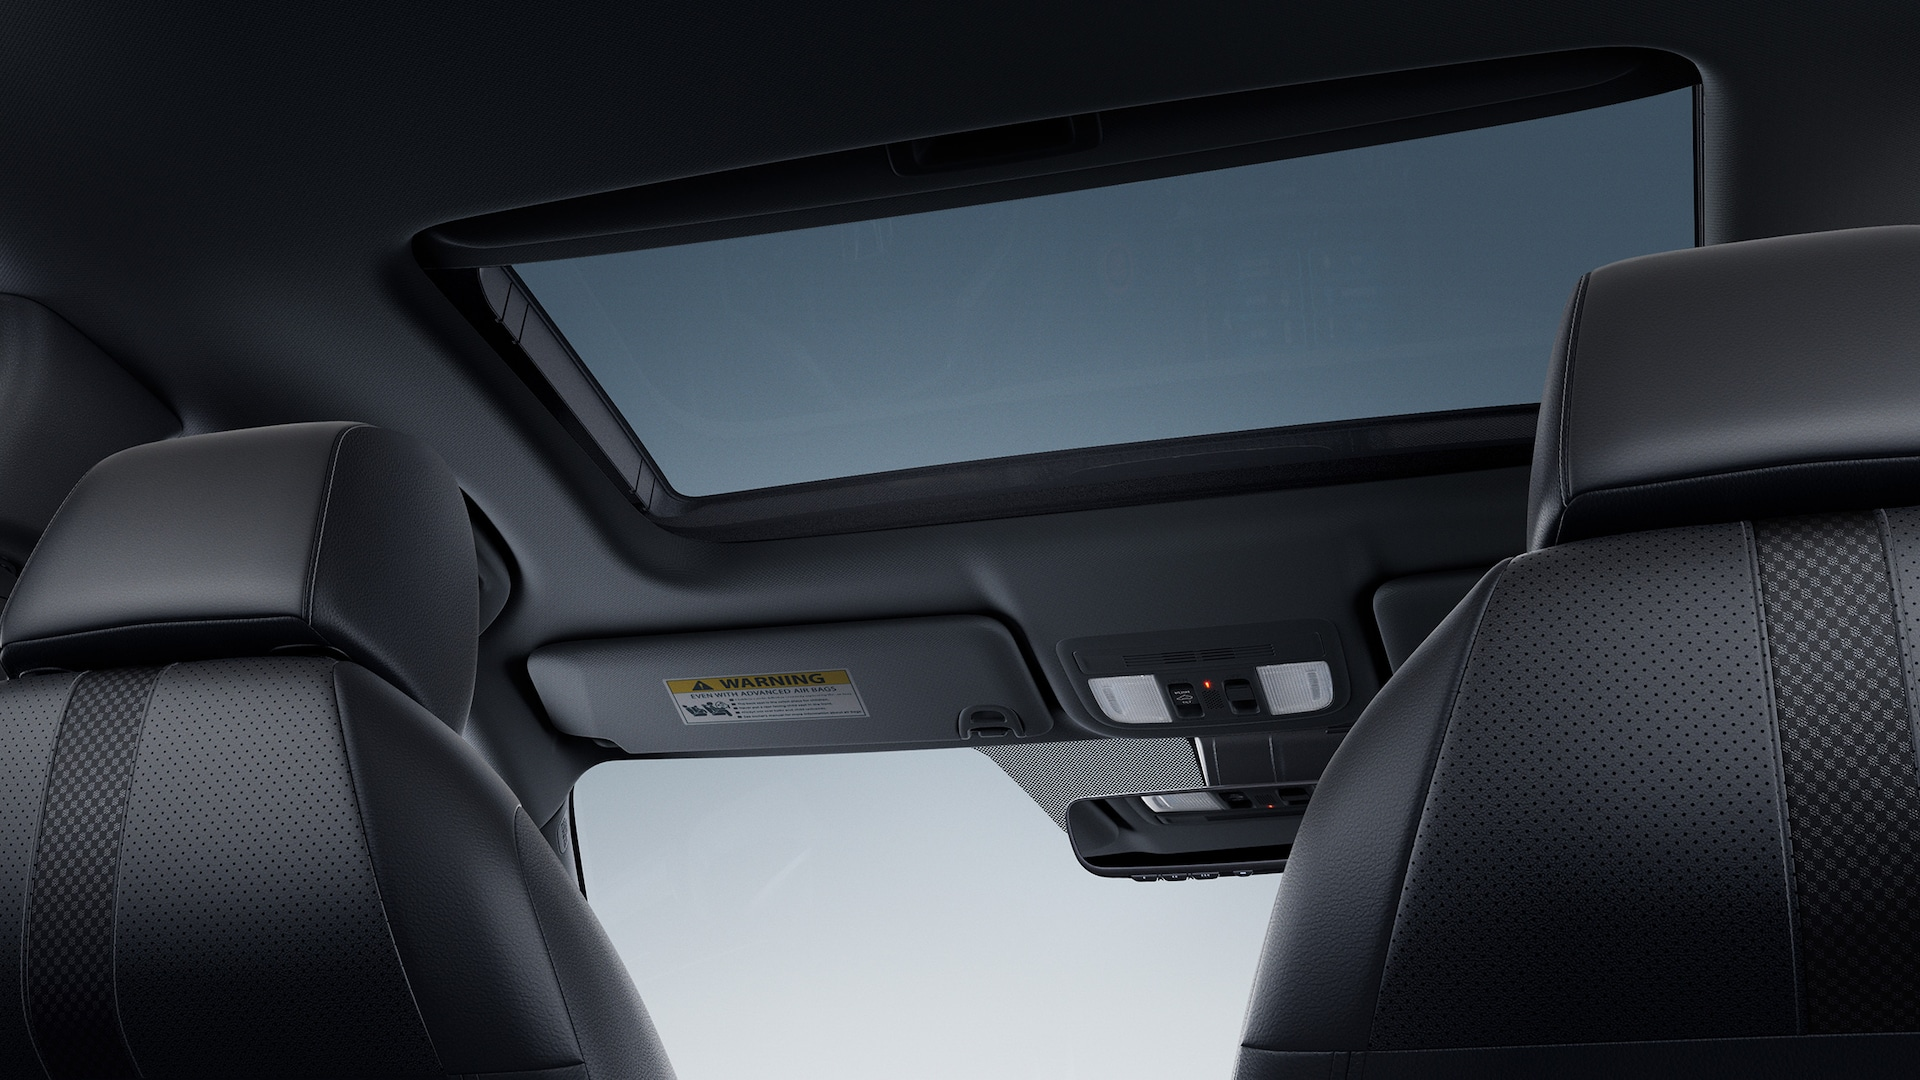 Interior view of the one-touch power moonroof in the 2020 Honda Civic Coupe.